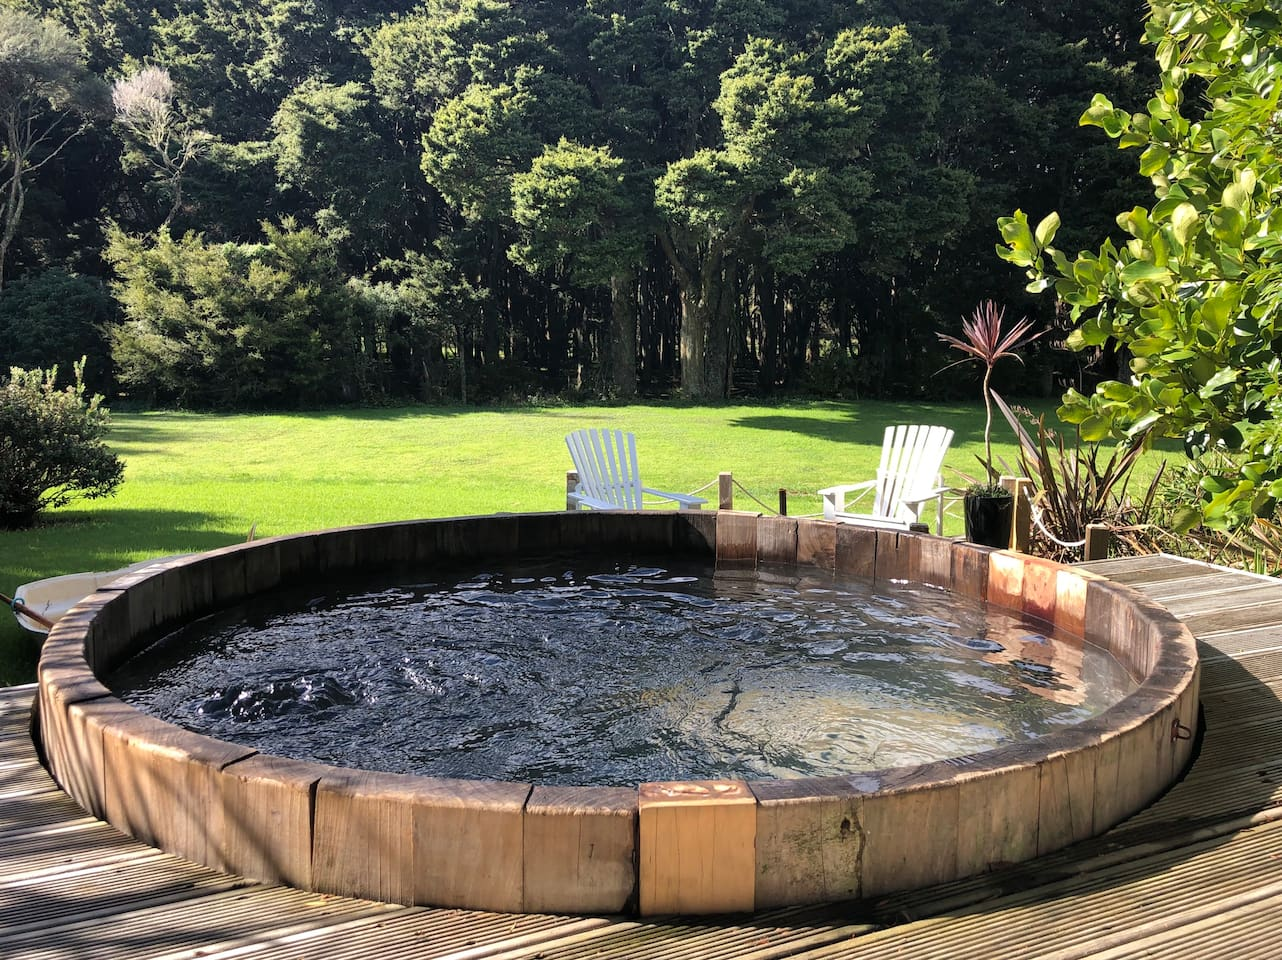 Relax in the private hot tub, which is especially amazing at night under the stars.